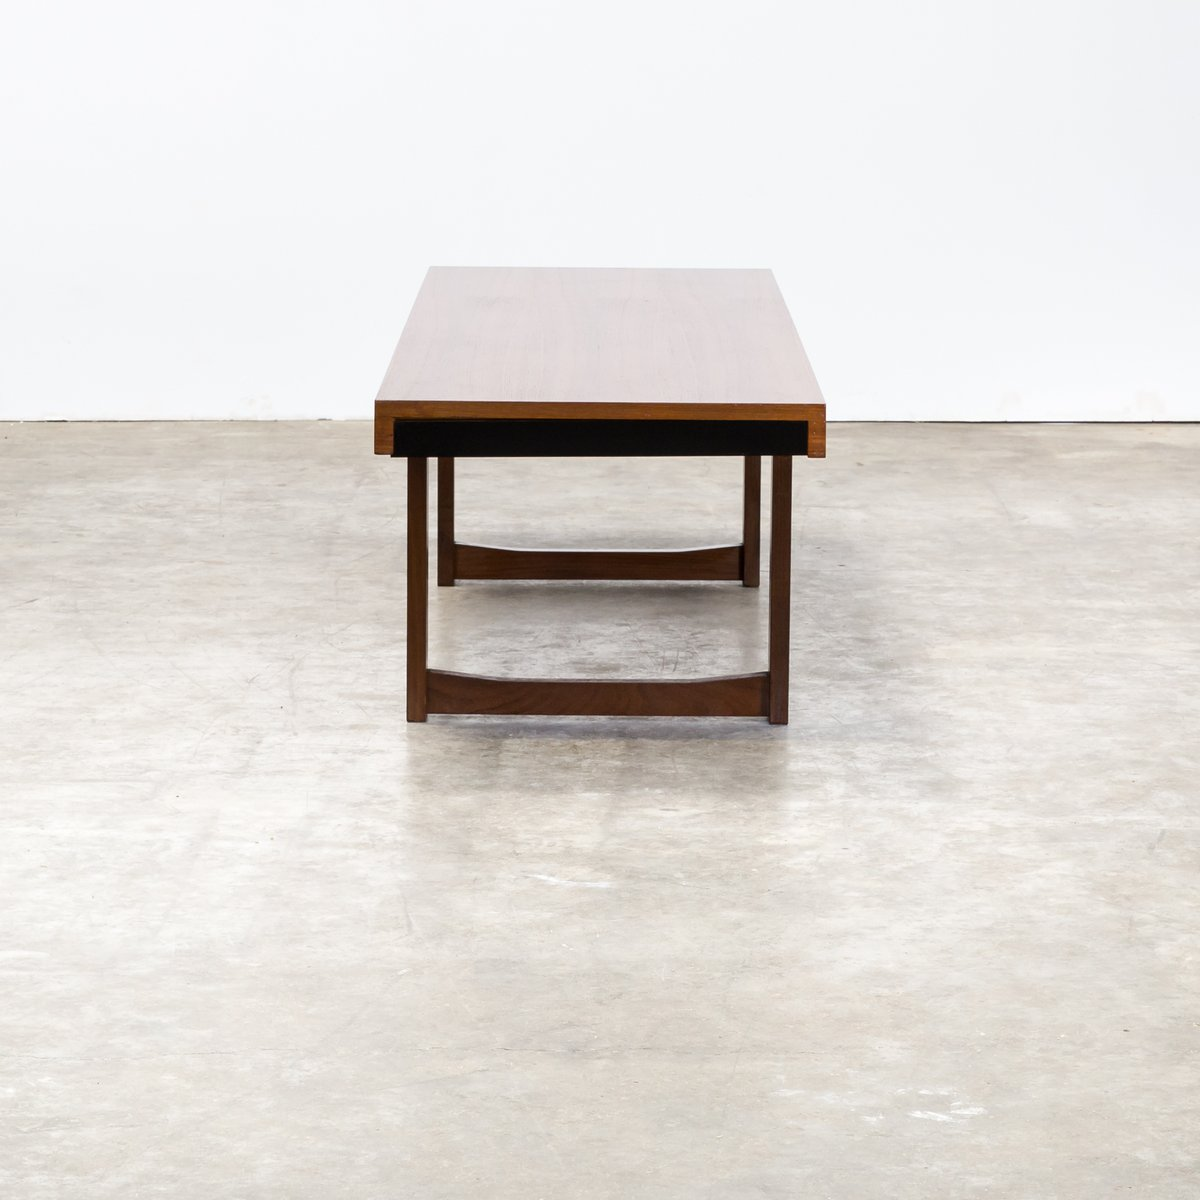 Rectangle Coffee Tables You Ll Love: Vintage Teak Rectangle Coffee Table, 1960s For Sale At Pamono